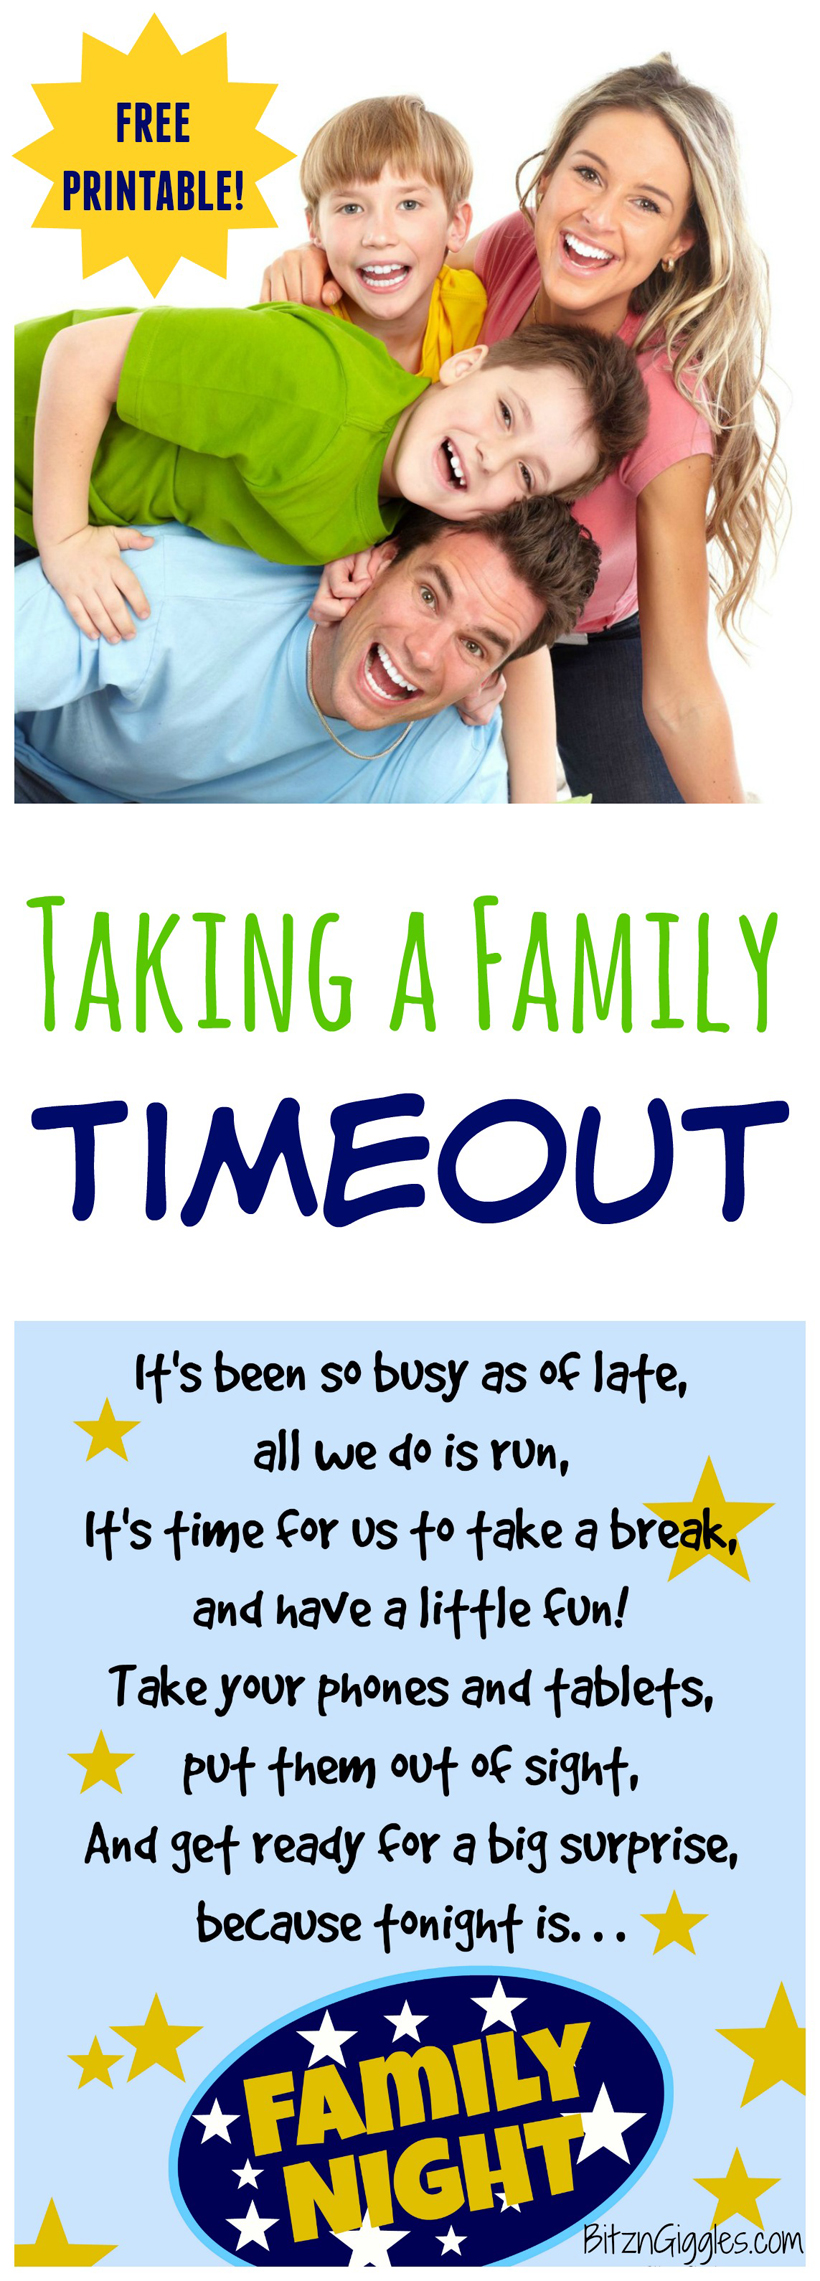 Taking a Family Timeout Family Night